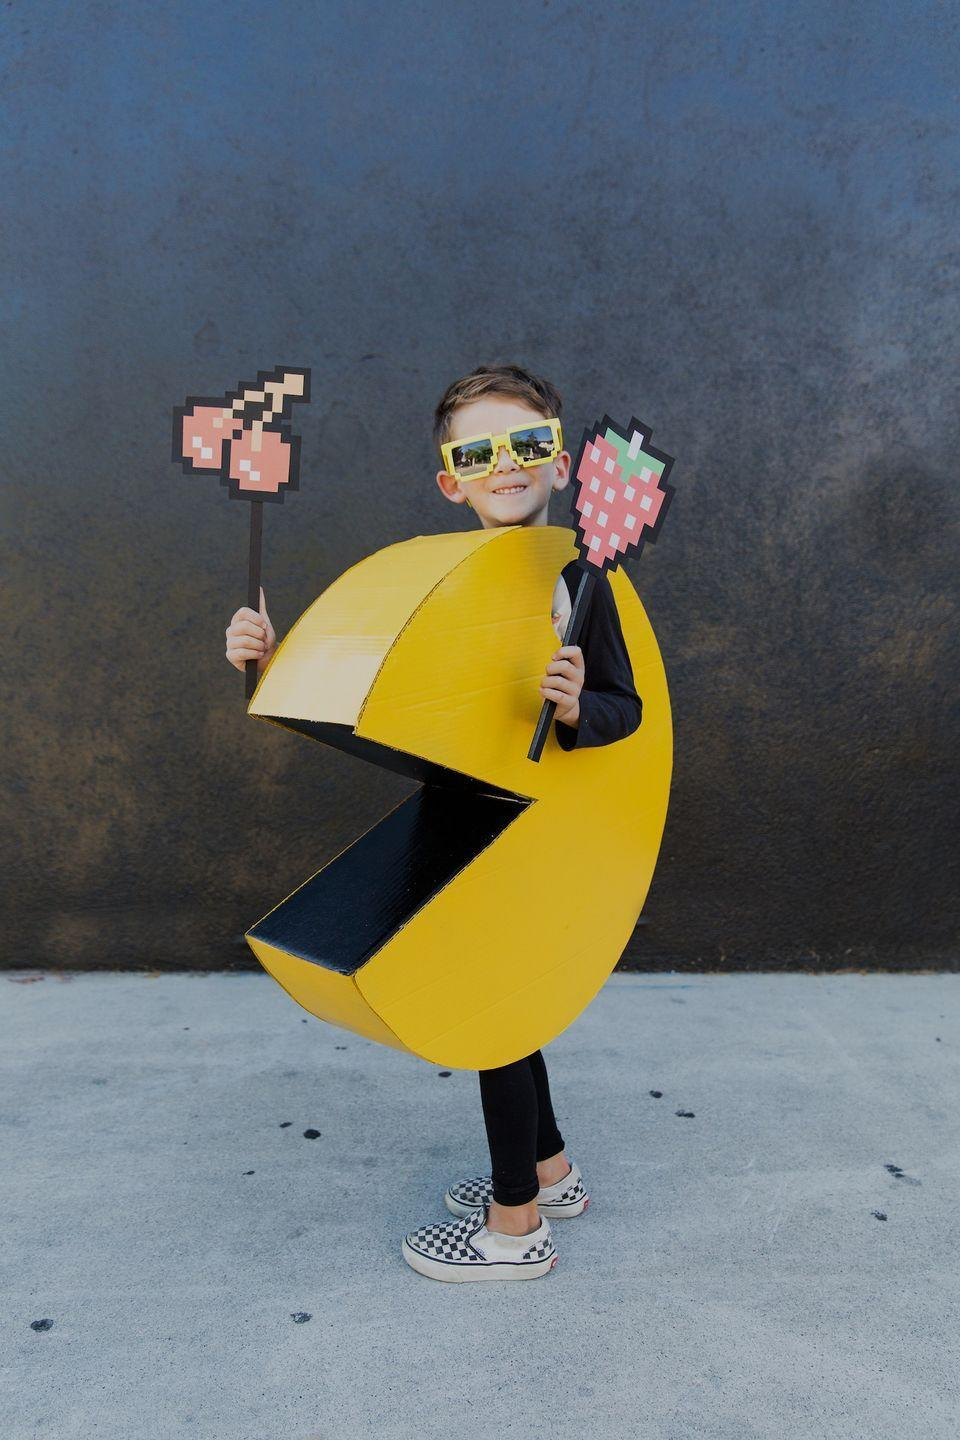 """<p>Teens will love dressing as this iconic video game character. The fun costume starts with cardboard and duct tape!</p><p><strong>Get the tutorial at <a href=""""https://theeffortlesschic.com/diy-kids-pac-man-halloween-costume/"""" rel=""""nofollow noopener"""" target=""""_blank"""" data-ylk=""""slk:The Effortless Chic"""" class=""""link rapid-noclick-resp"""">The Effortless Chic</a>.</strong><br> </p>"""